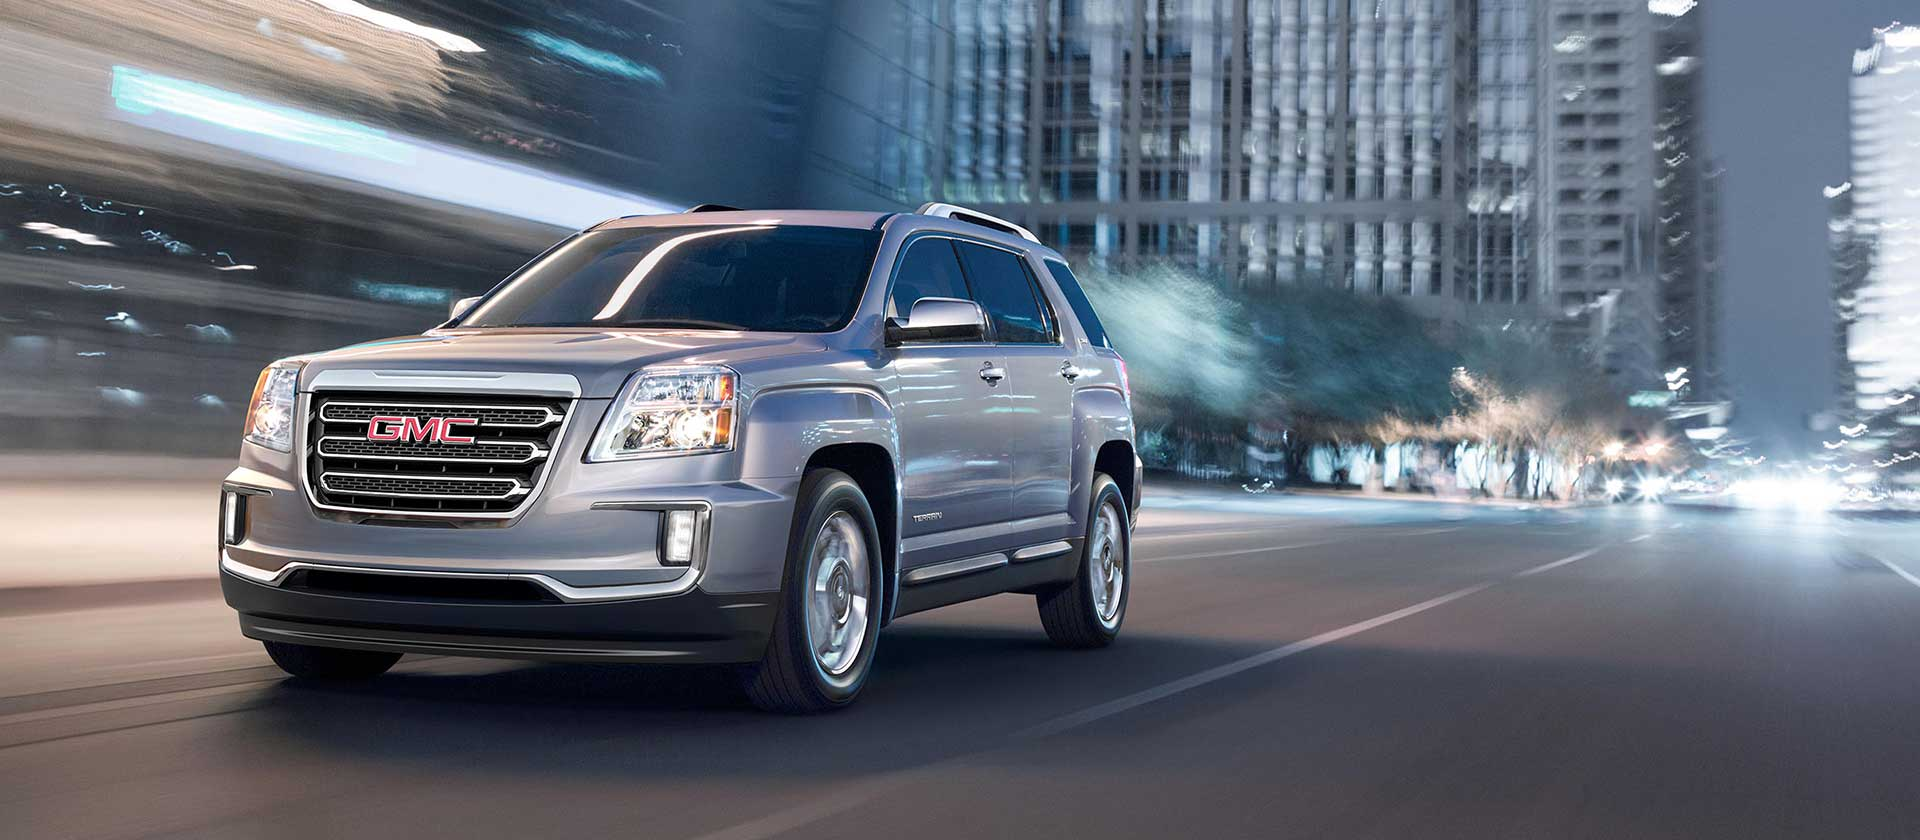 Guide To Buying A 2016 GMC Terrain